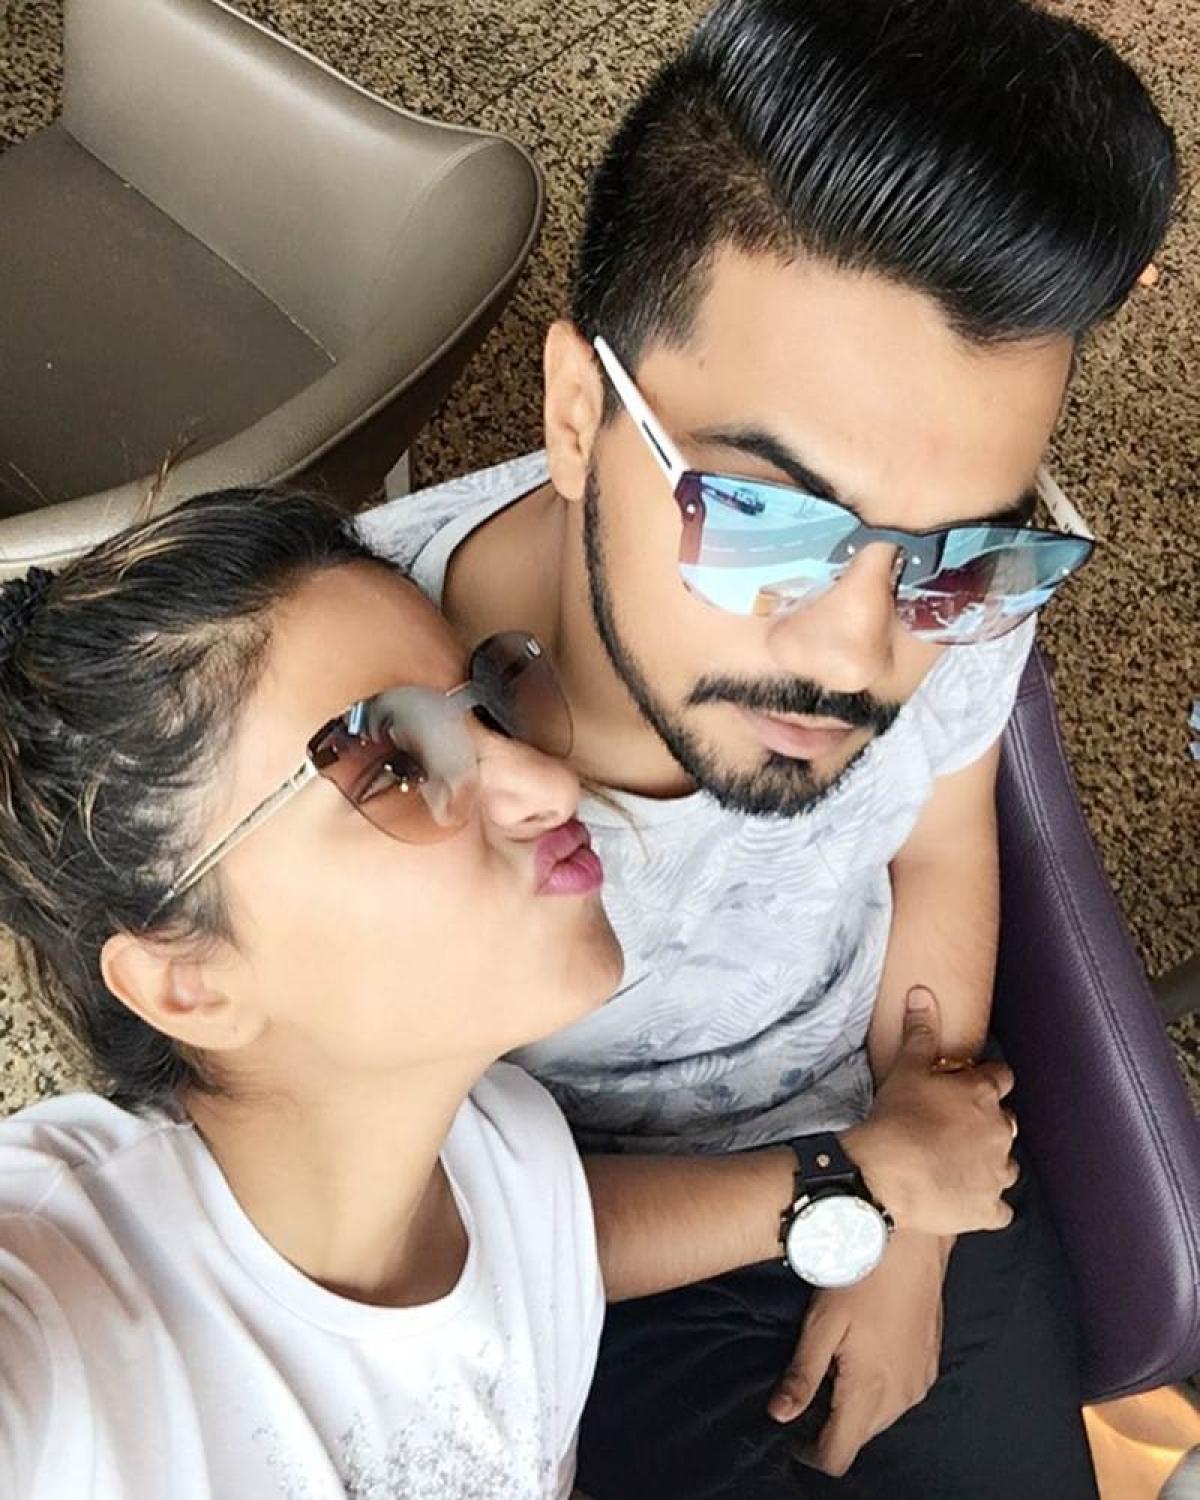 Bigg Boss 11: Karan Patel and Hina Khan's boyfriend Rocky Jaiswal have an ugly Twitter spat; find out why